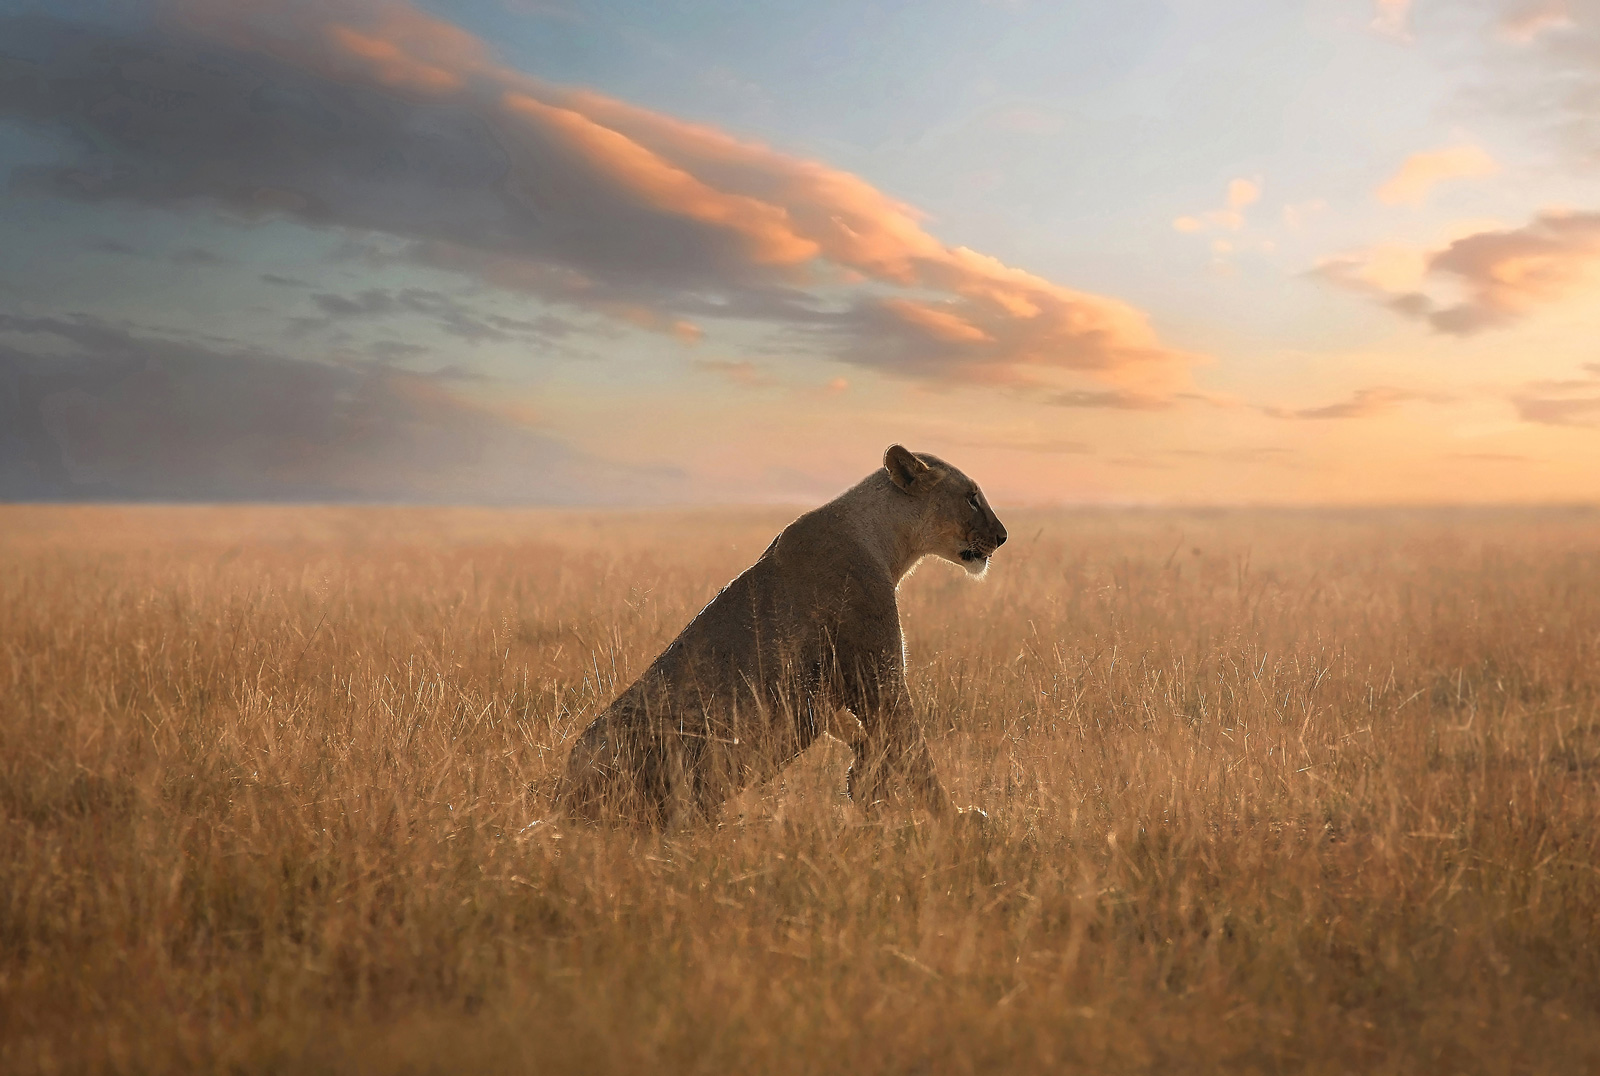 """The future of lions in Africa is in our hands © <a href=""""http://bjornpersson.nu/"""" target=""""_blank"""">Bjorn Persson</a>"""